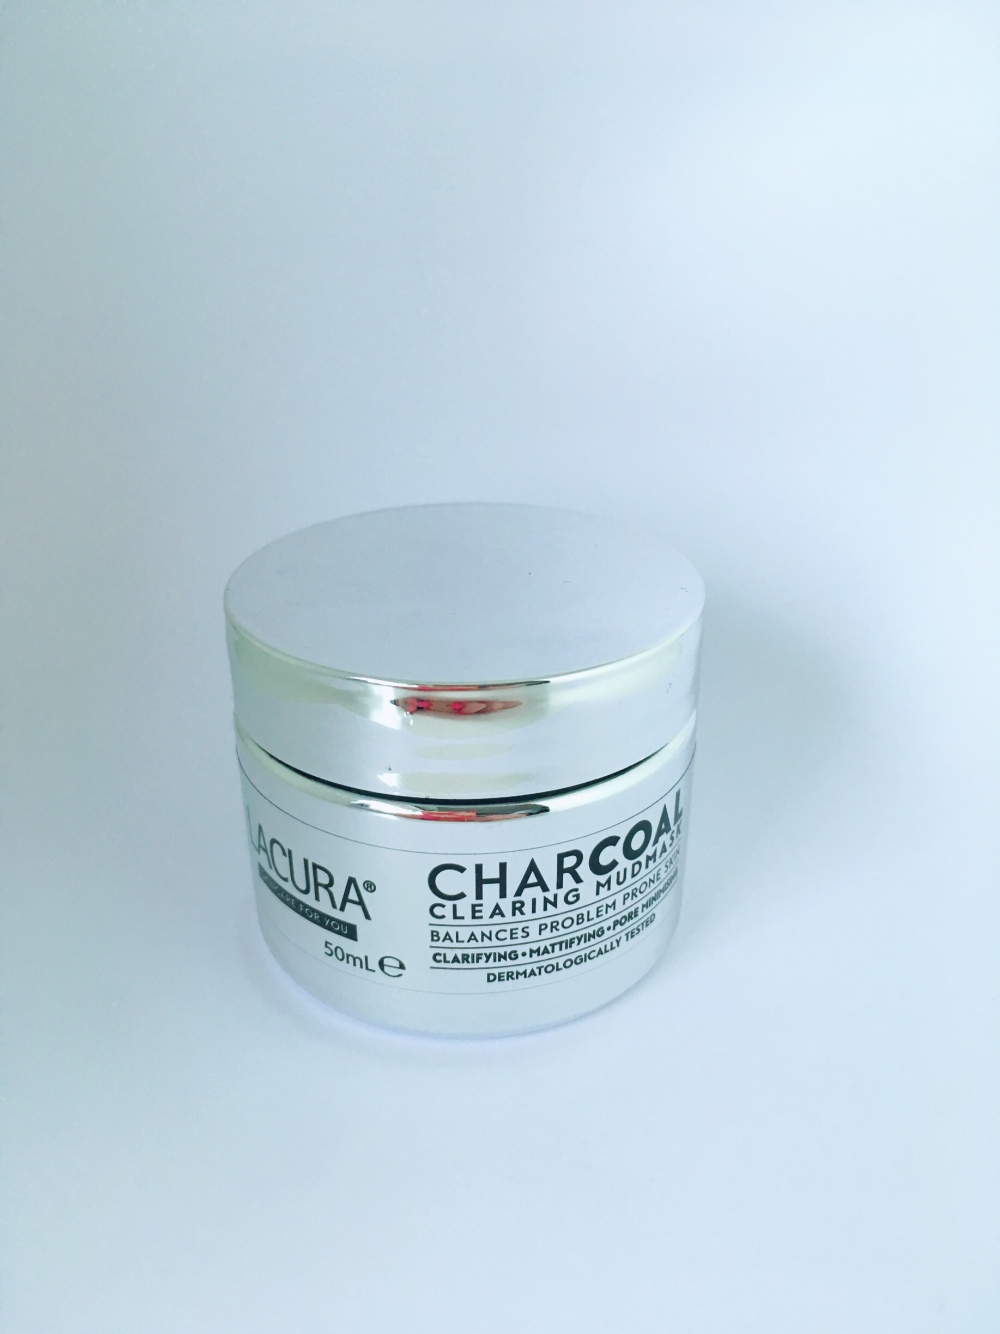 Lacura charcoal face mask